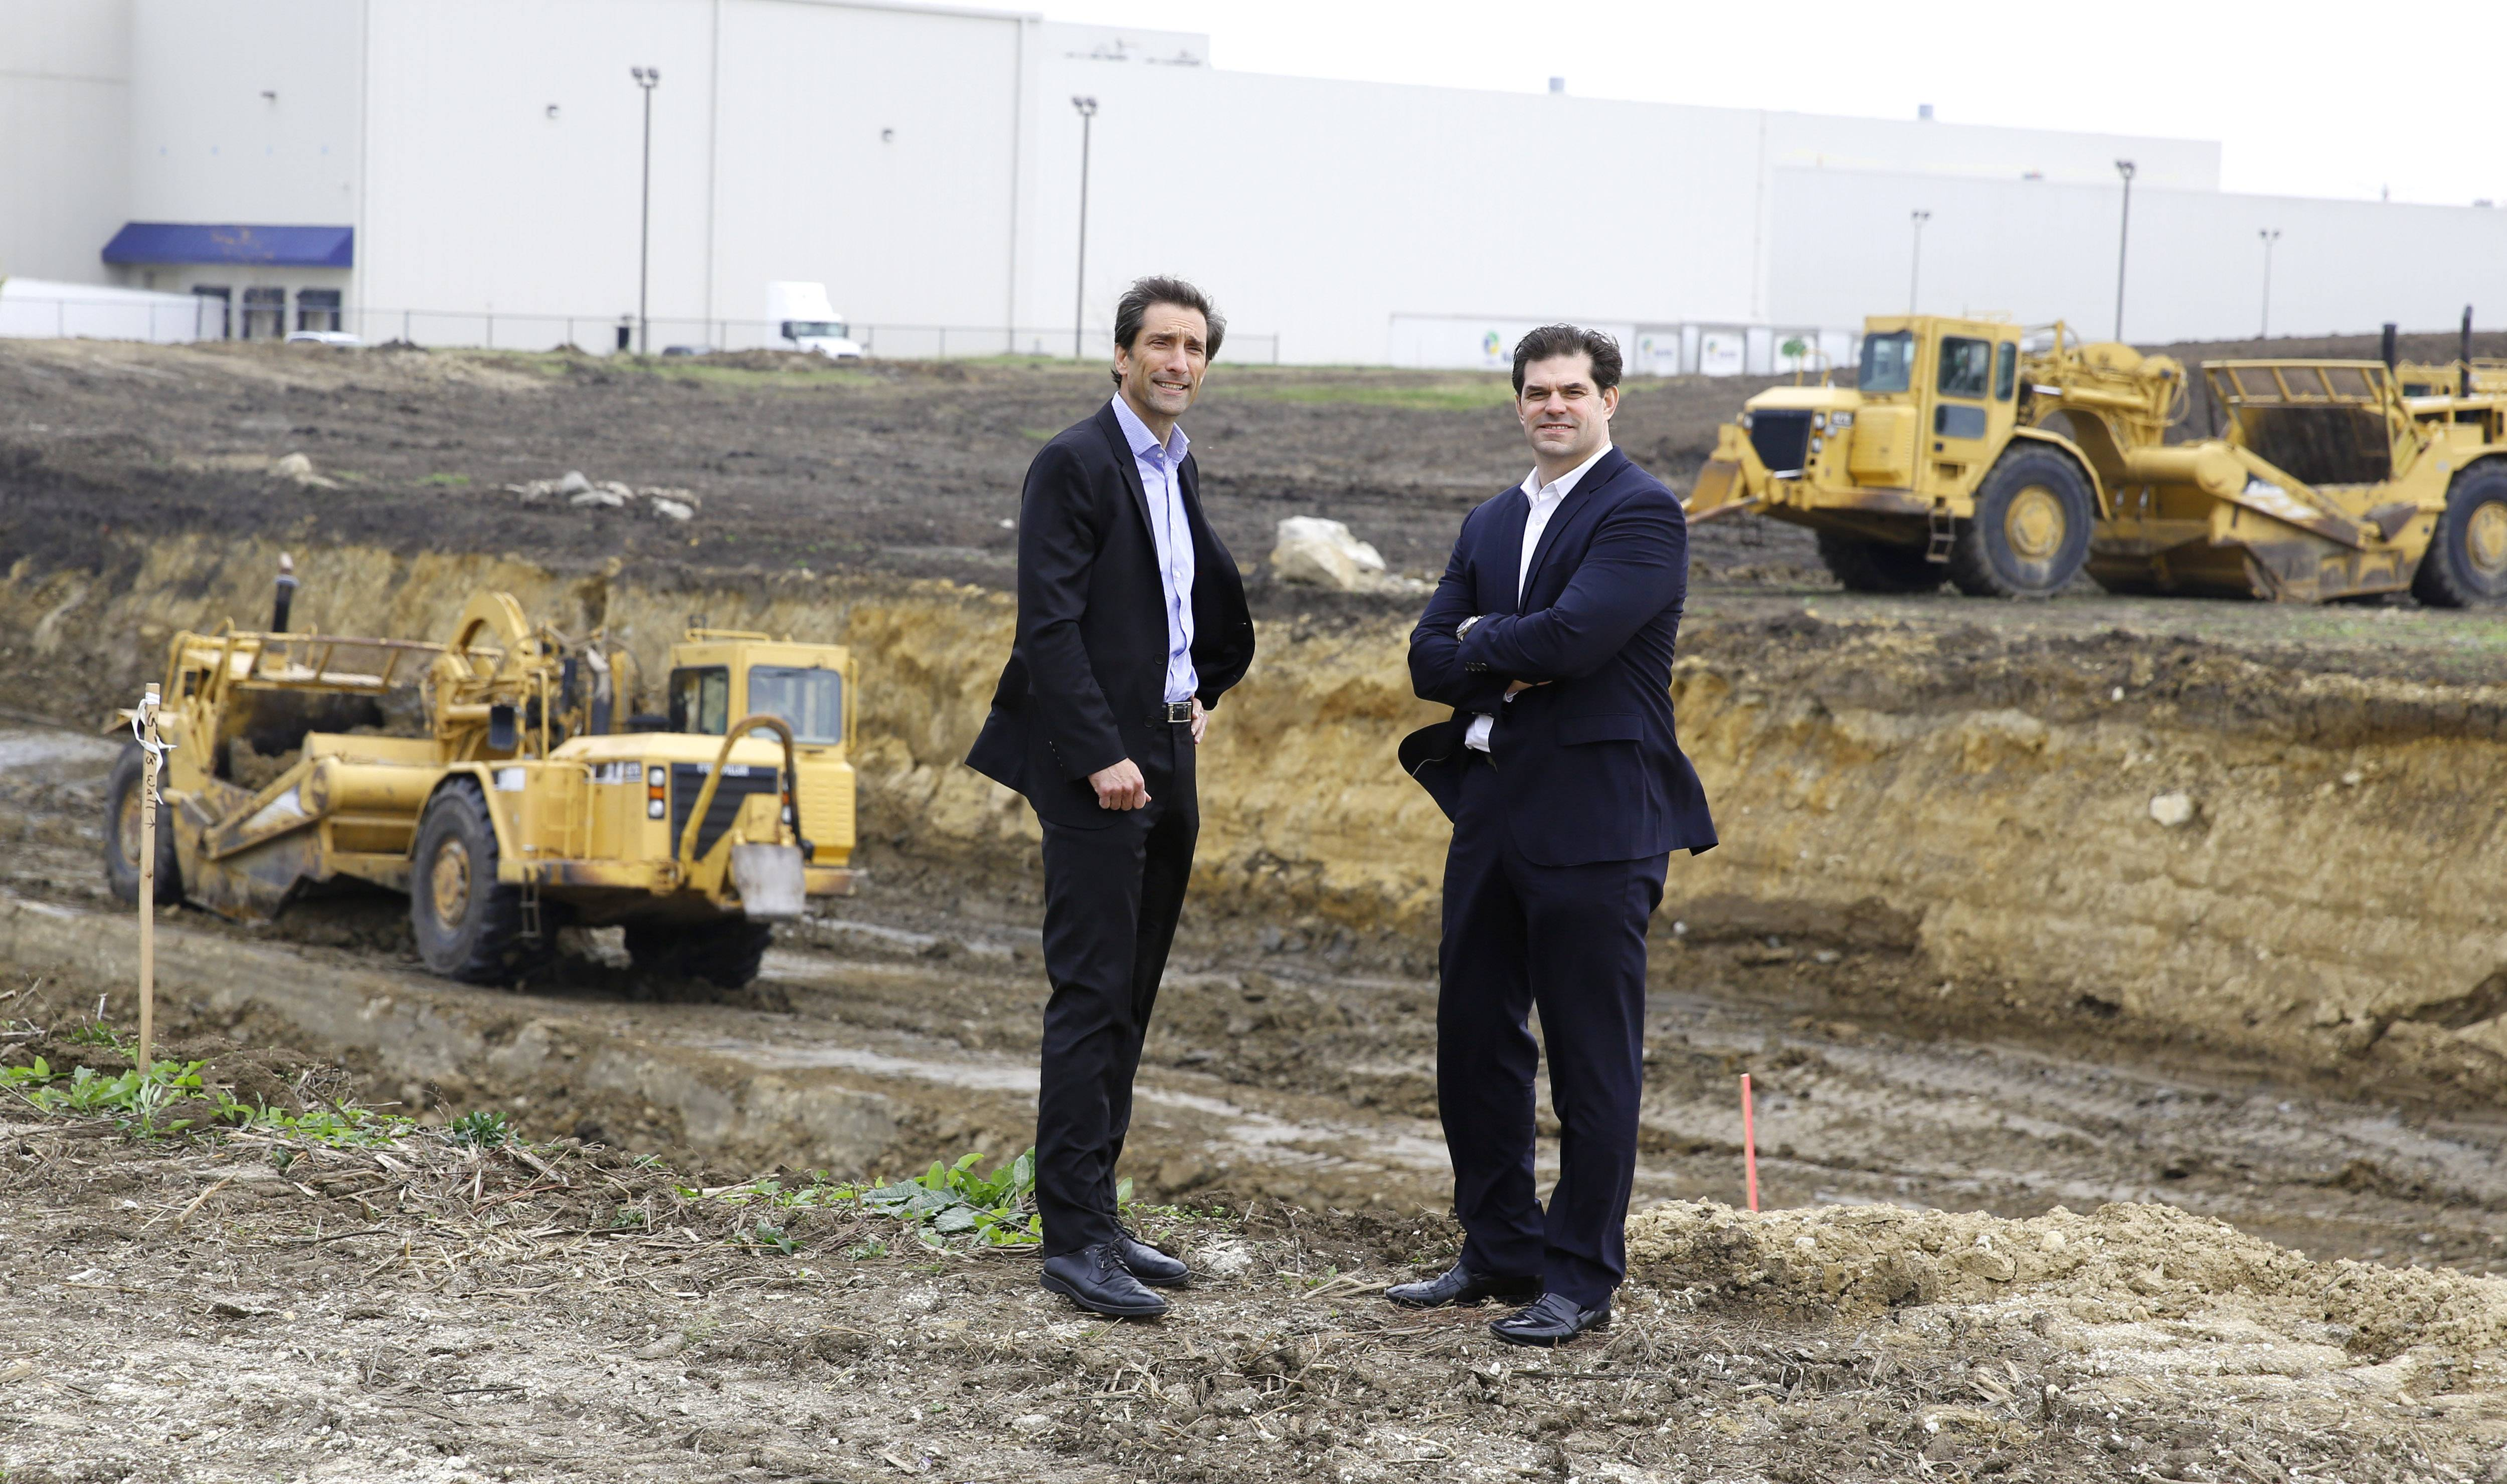 JLL's Keith Stauber, managing director of the Midwest Industrial Services Group, left, and Steve Ostrowski, vice president of Industrial Real Estate Services, right, stand in front of what will become a new spec building to be completed in June 2017. The 271,000-square-foot building is a joint venture between Stockbridge and Ventureone.